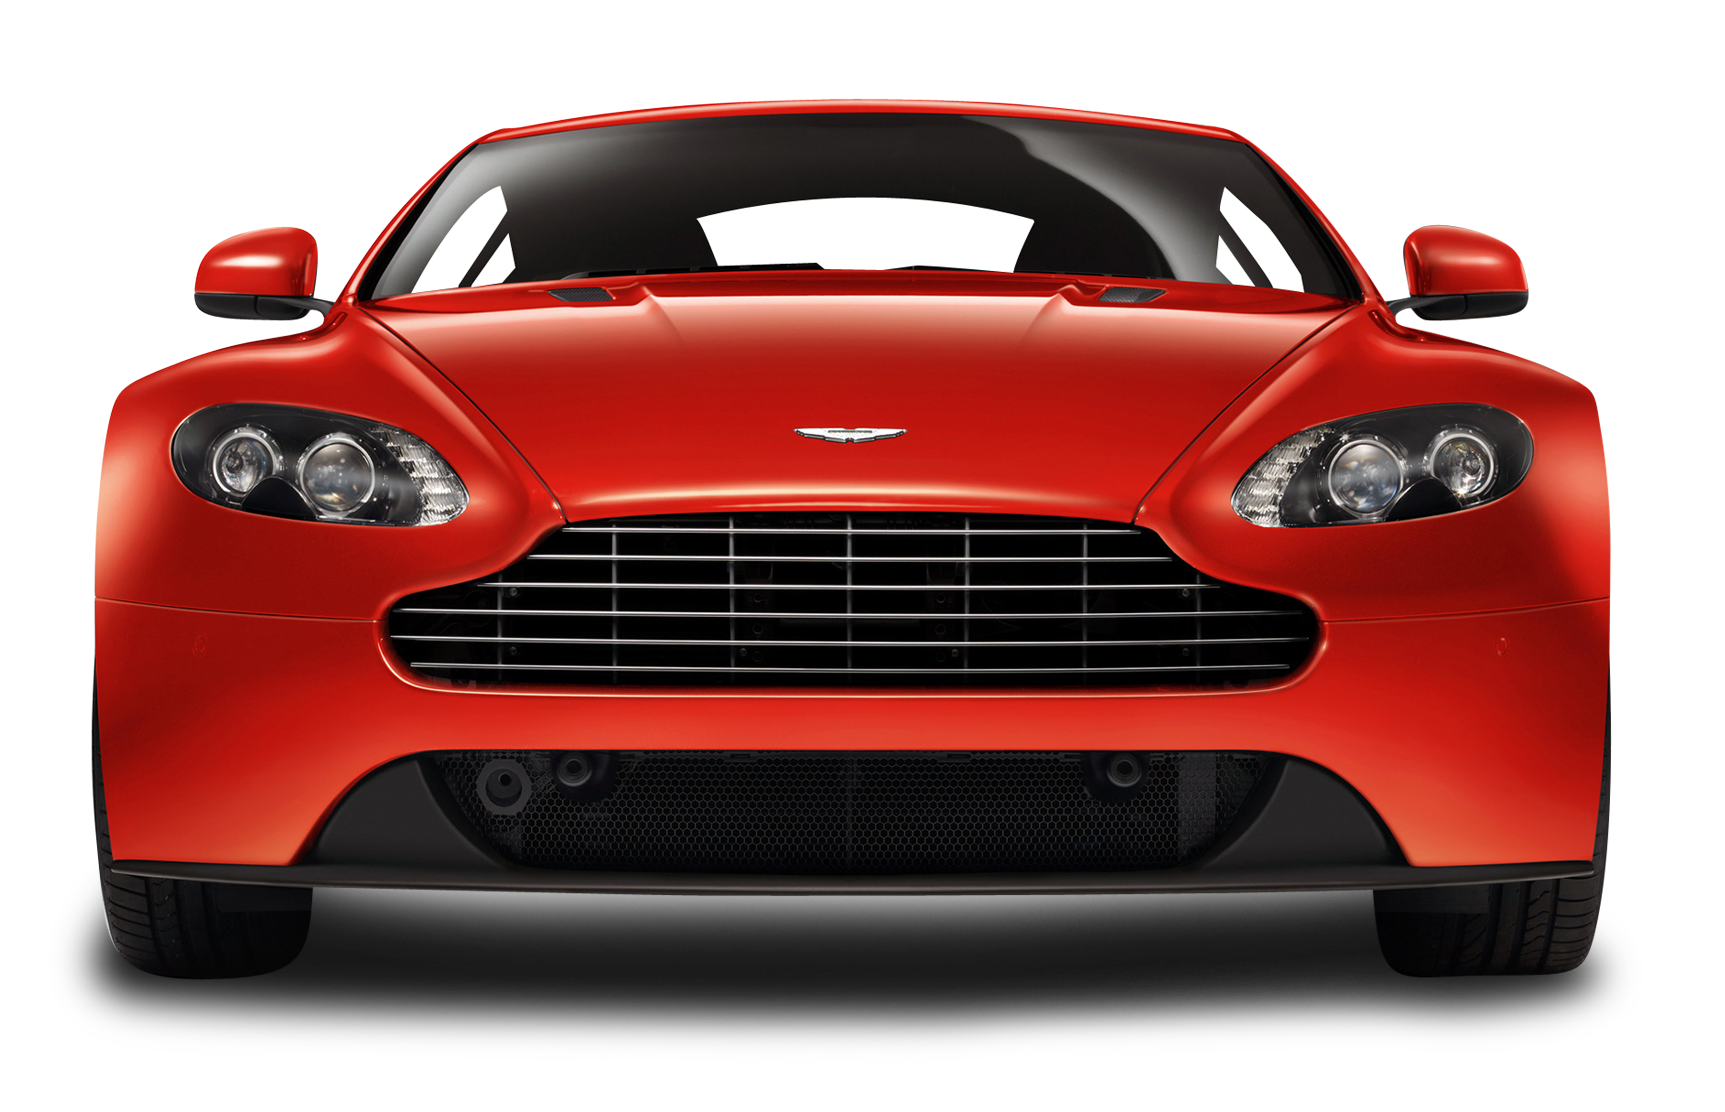 Red Aston Martin V8 Vantage Front View Car Png Image Purepng Free Transparent Cc0 Png Image Library